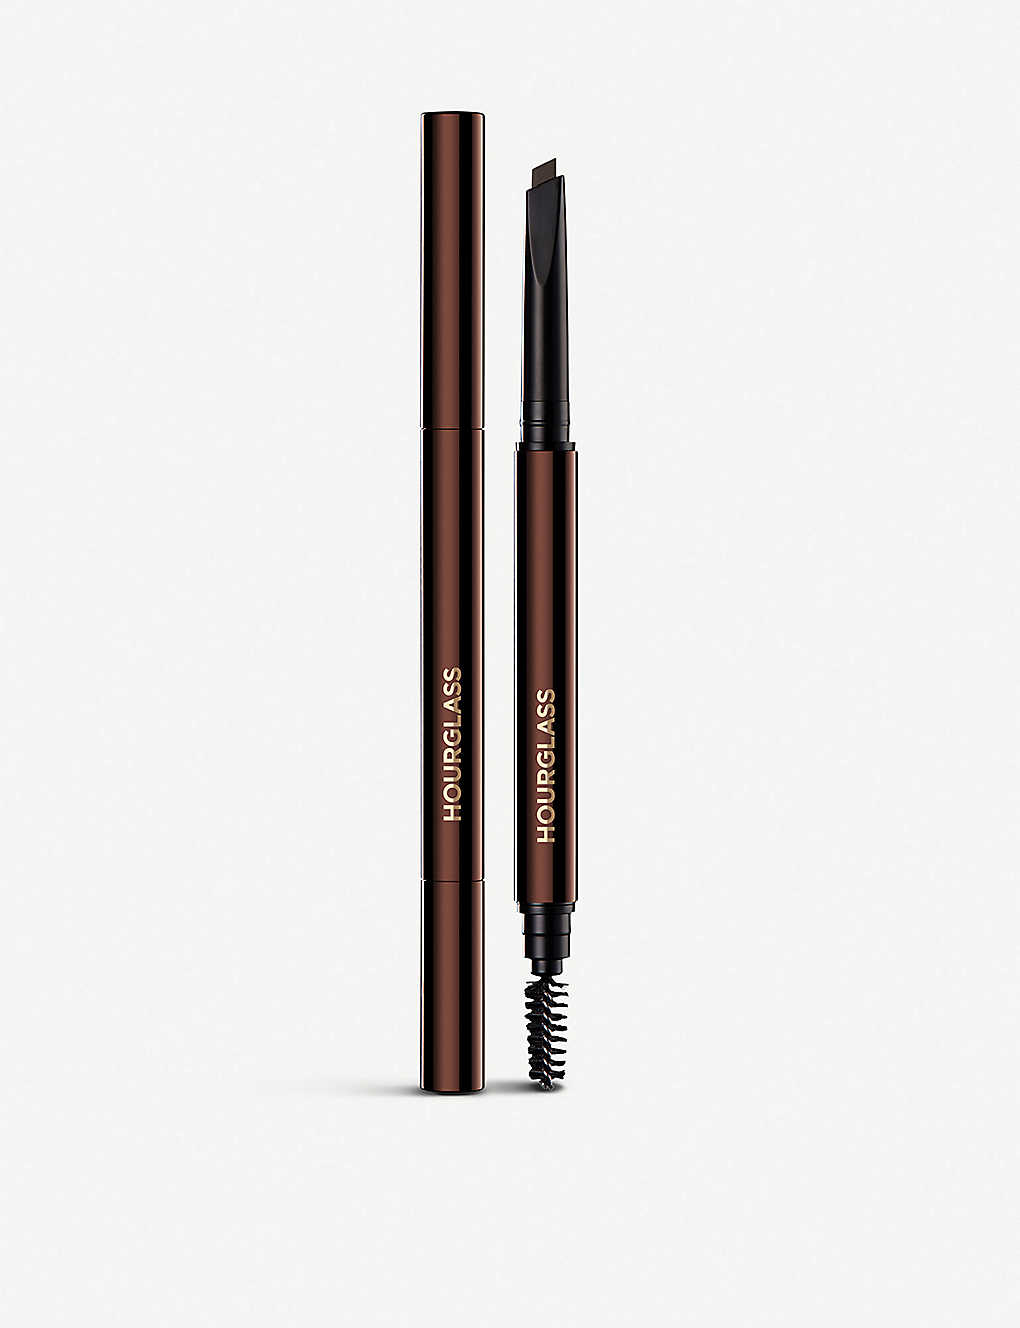 HOURGLASS: Arch Brow Sculpting Pencil